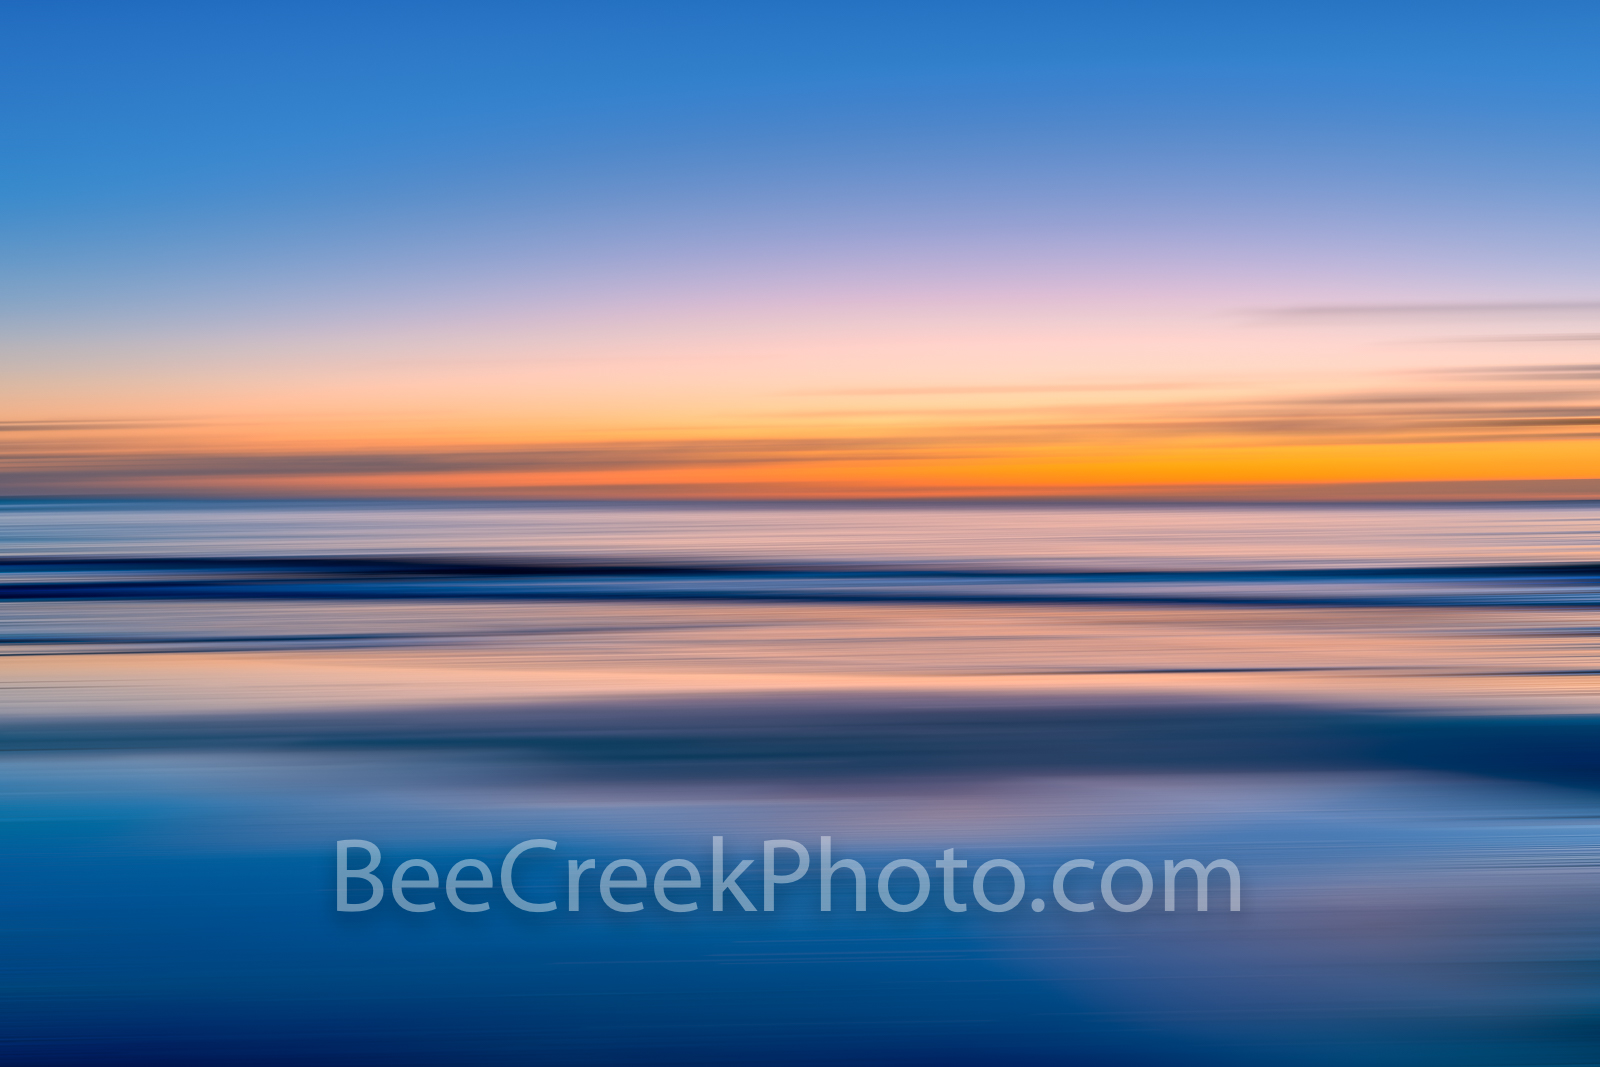 Alantic Ocean Vivid Sunrise - This abstract of vivid hues of blues, pinks, orange and yellow over the ocean waves with this long...